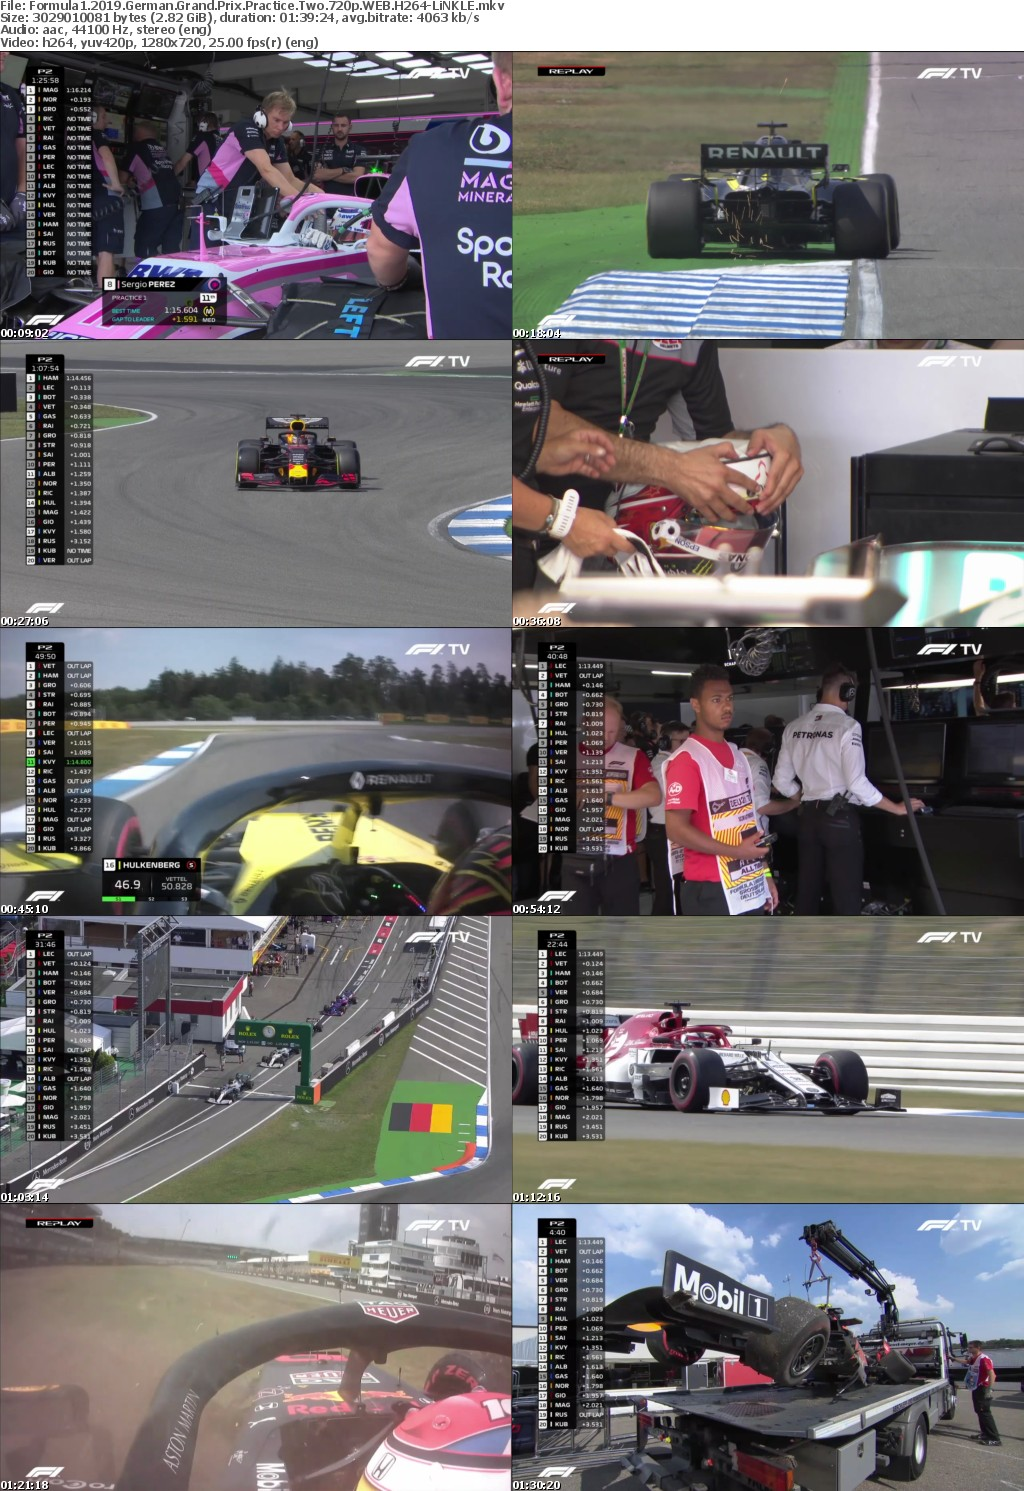 Formula1 2019 German Grand Prix Practice Two 720p WEB H264-LiNKLE